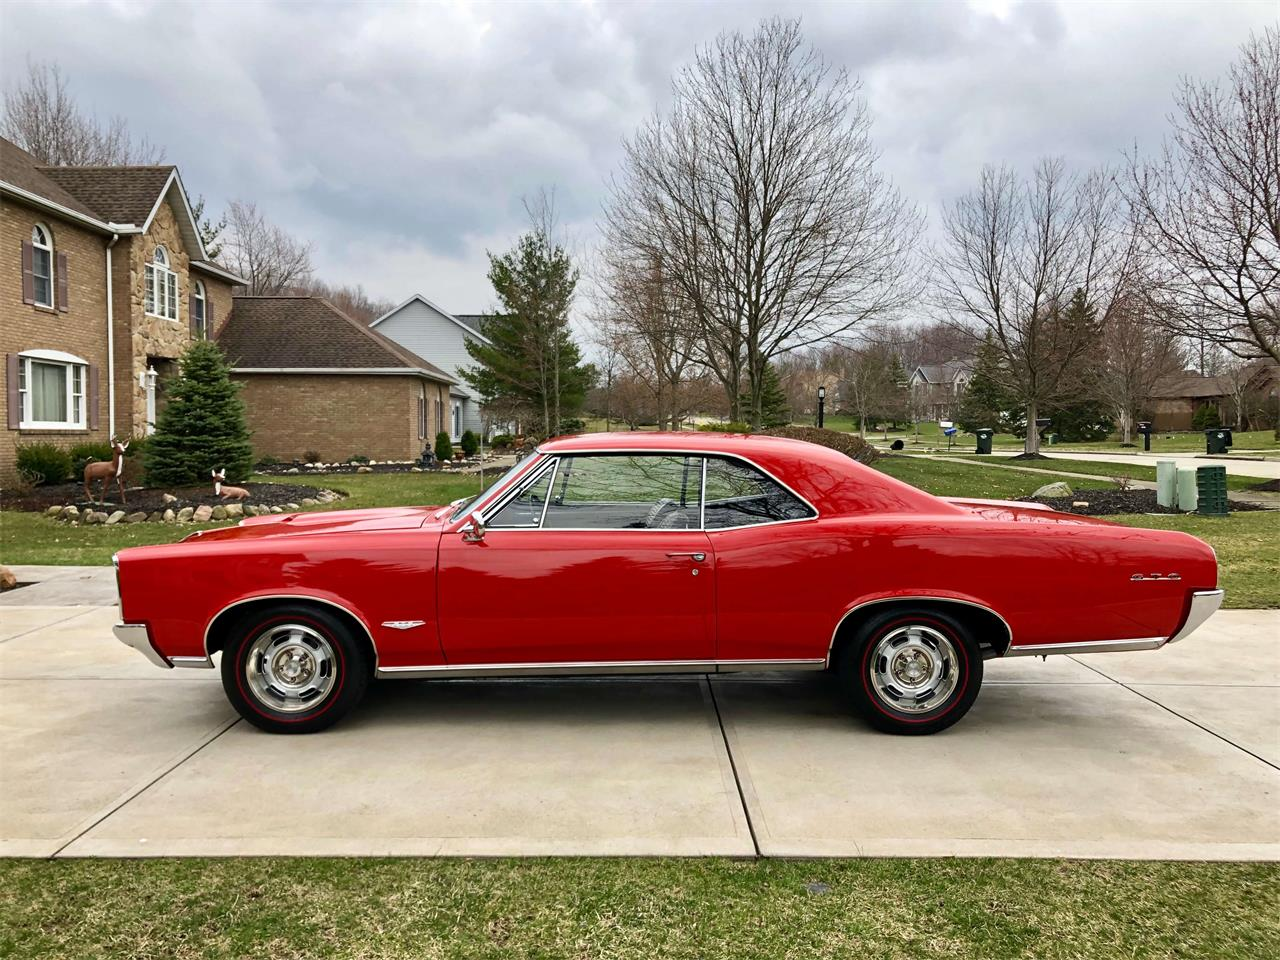 For Sale: 1966 Pontiac GTO in North Royalton, Ohio